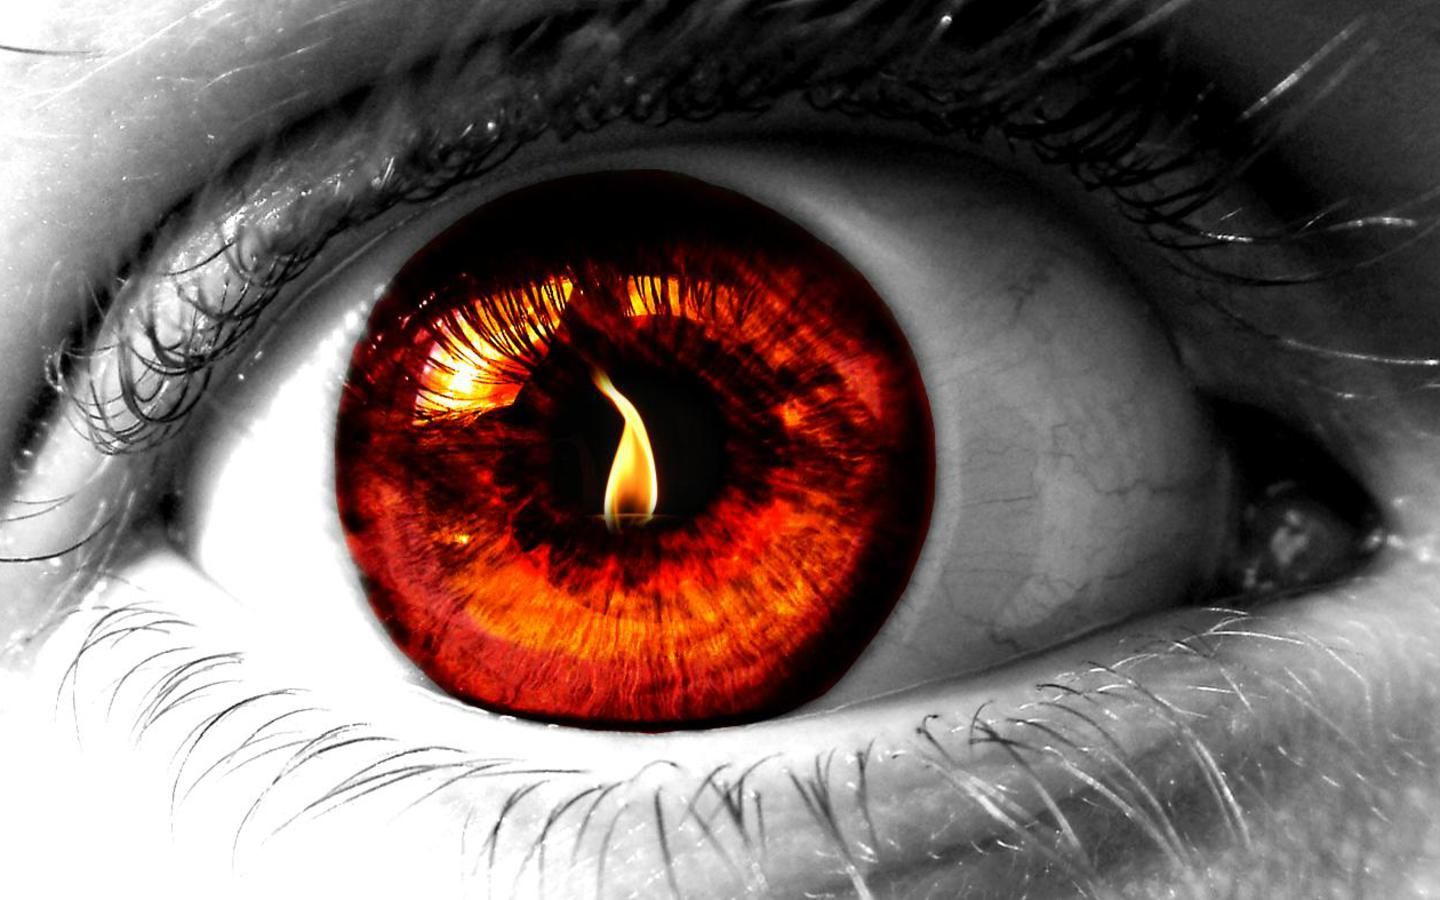 Looking Fire In The Eye A Collection Of Christian Articles Eyes Wallpaper Eye Art Red Eyes